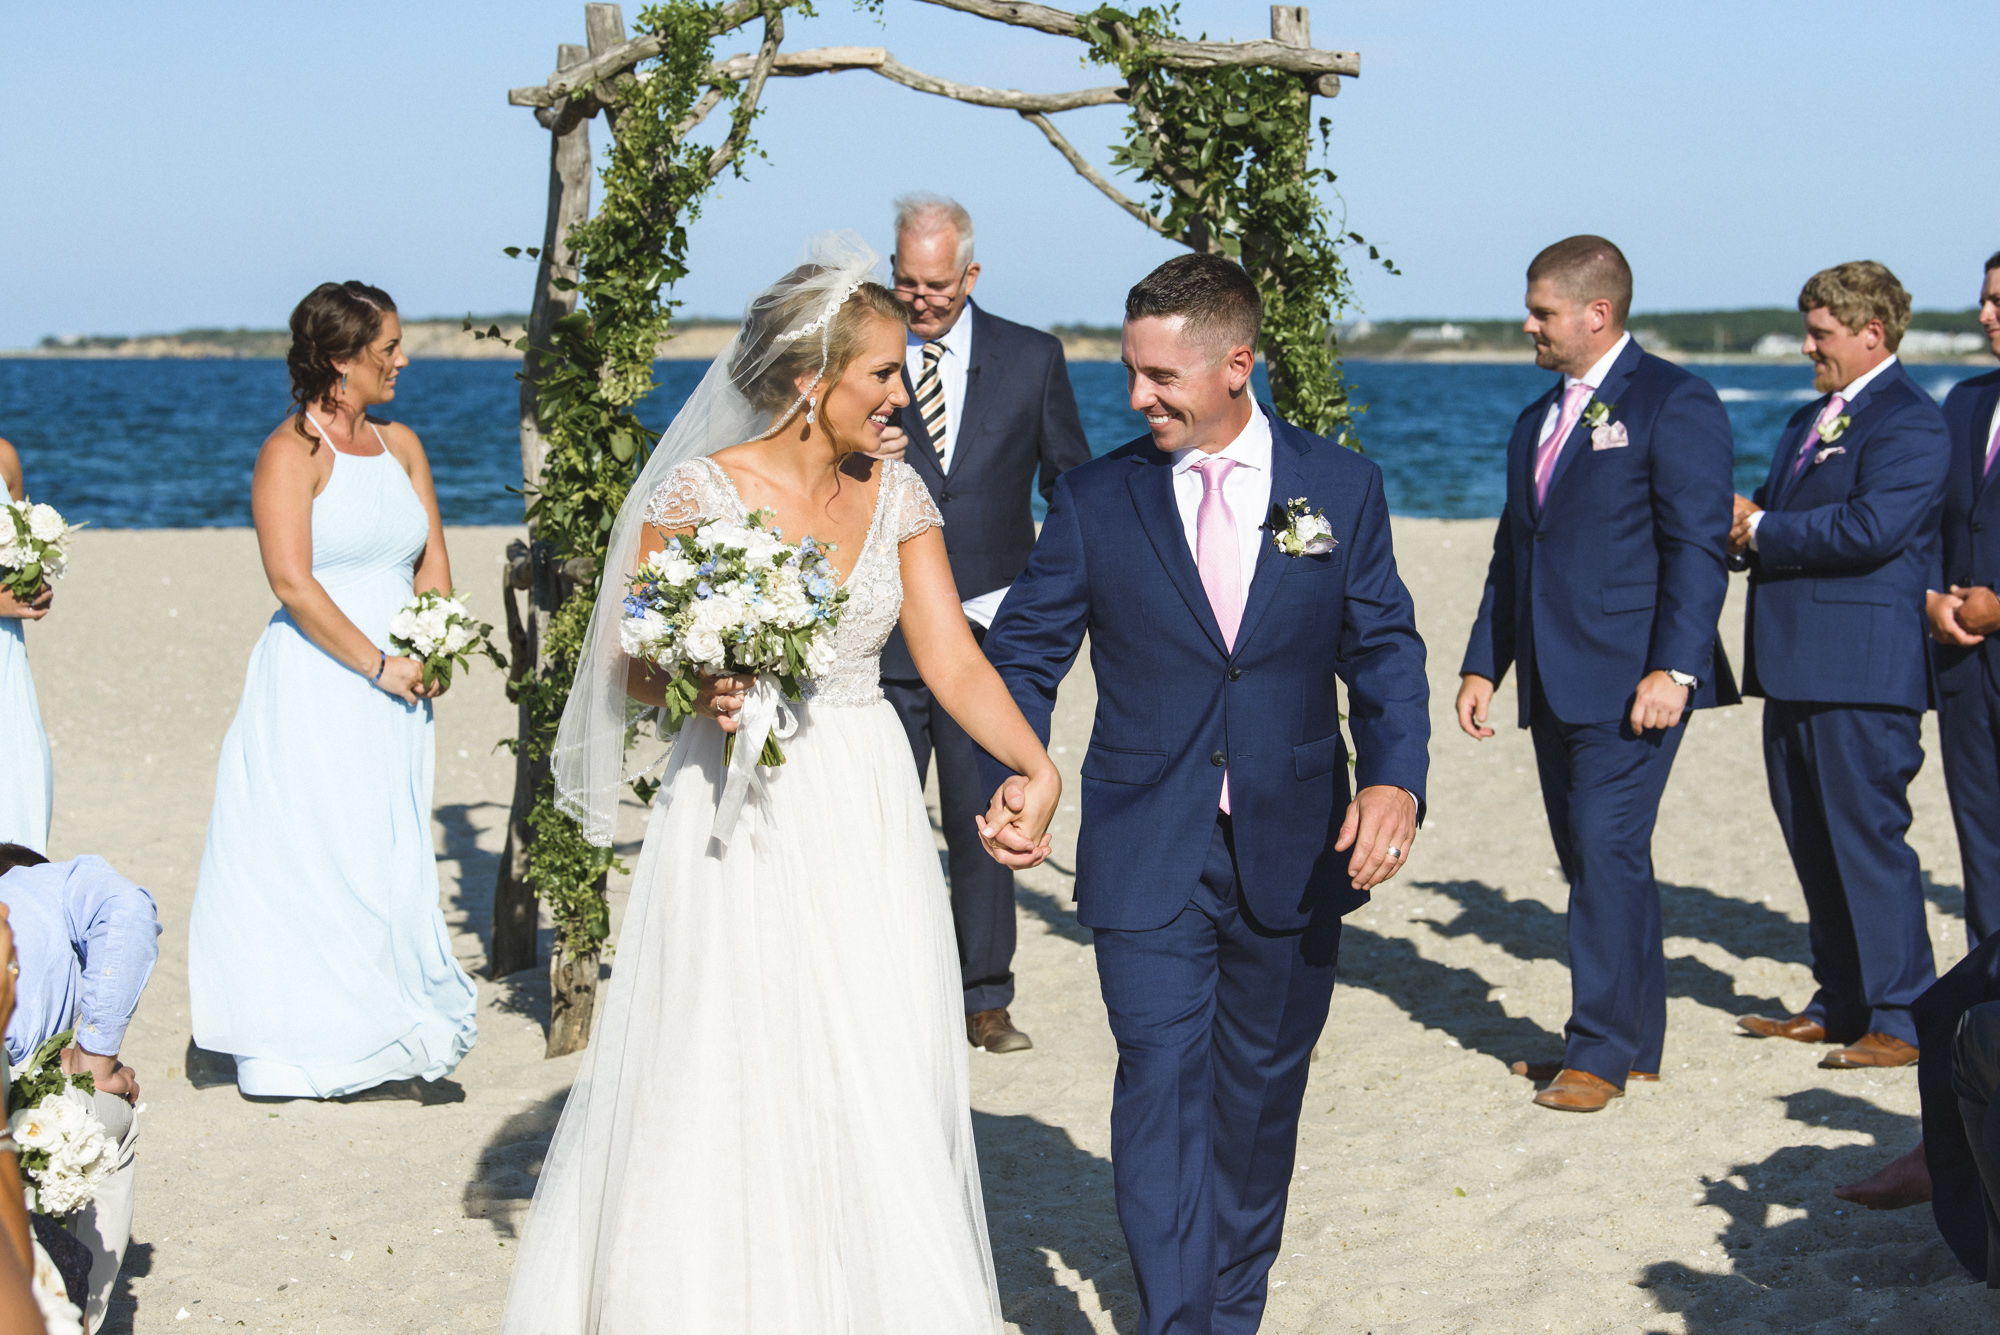 Newlyweds exit their wedding ceremony at the Edgartown Lighthouse photo by David Welch Photography